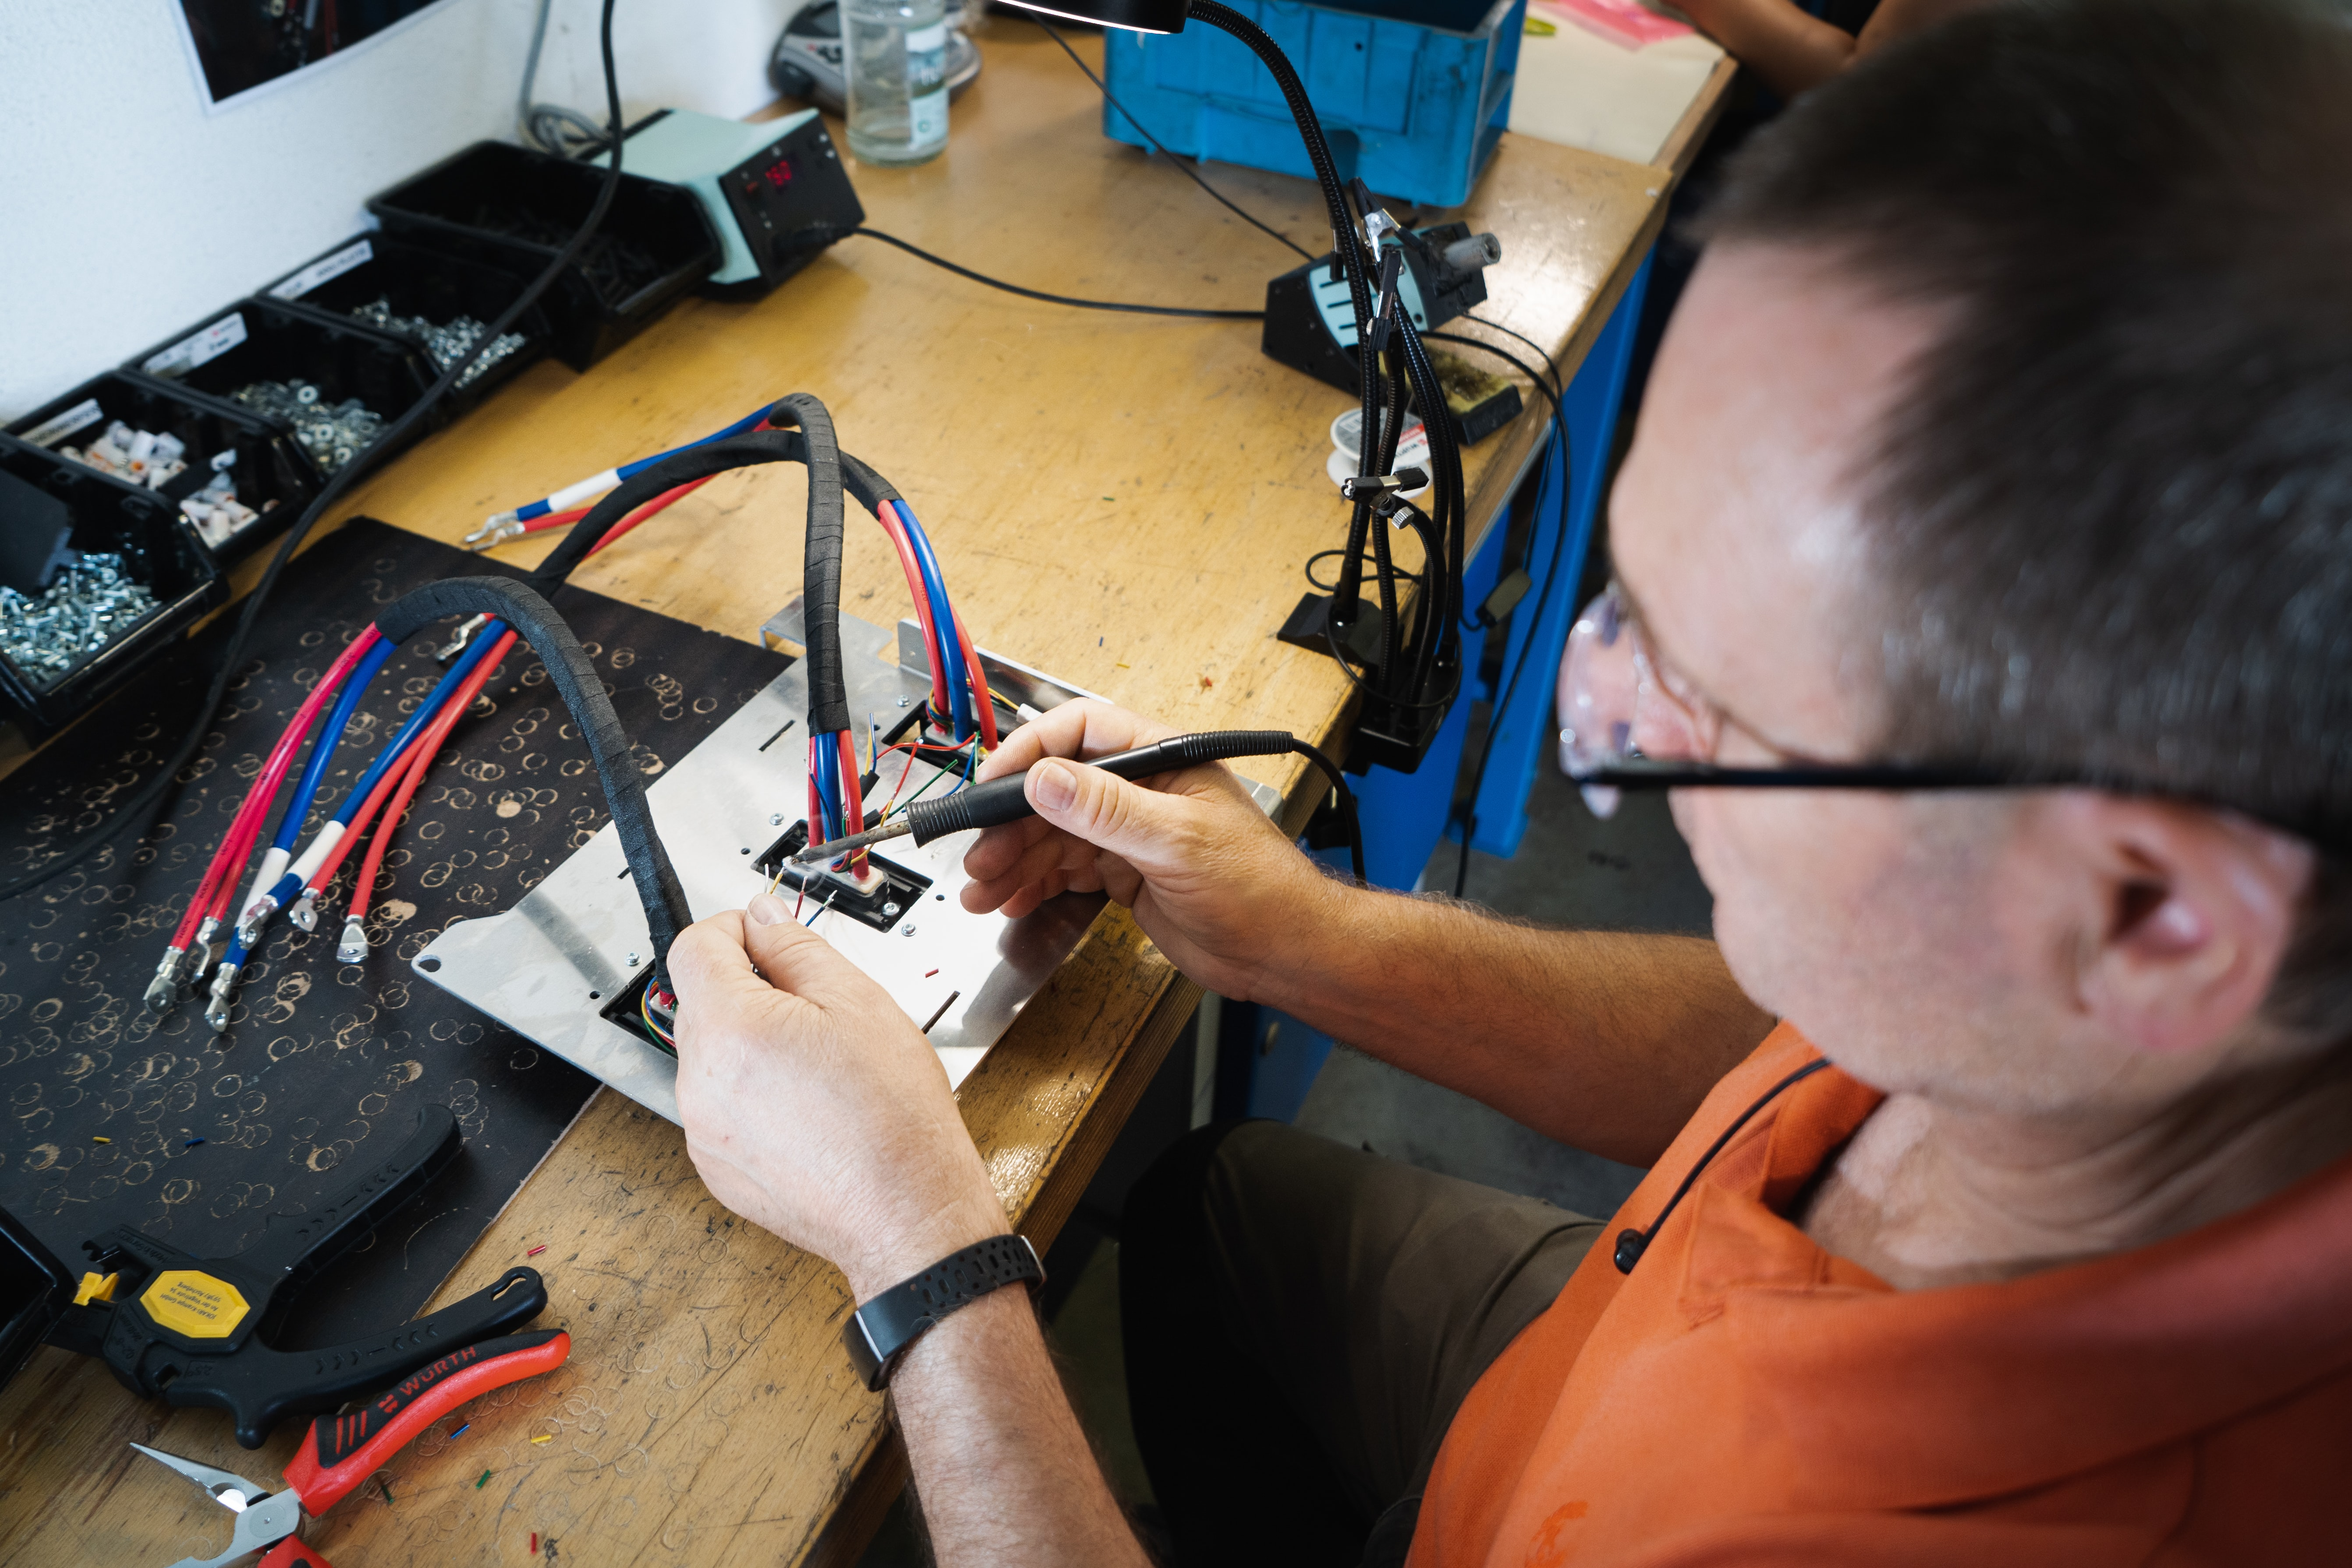 precision instrument repairman working on watch parts